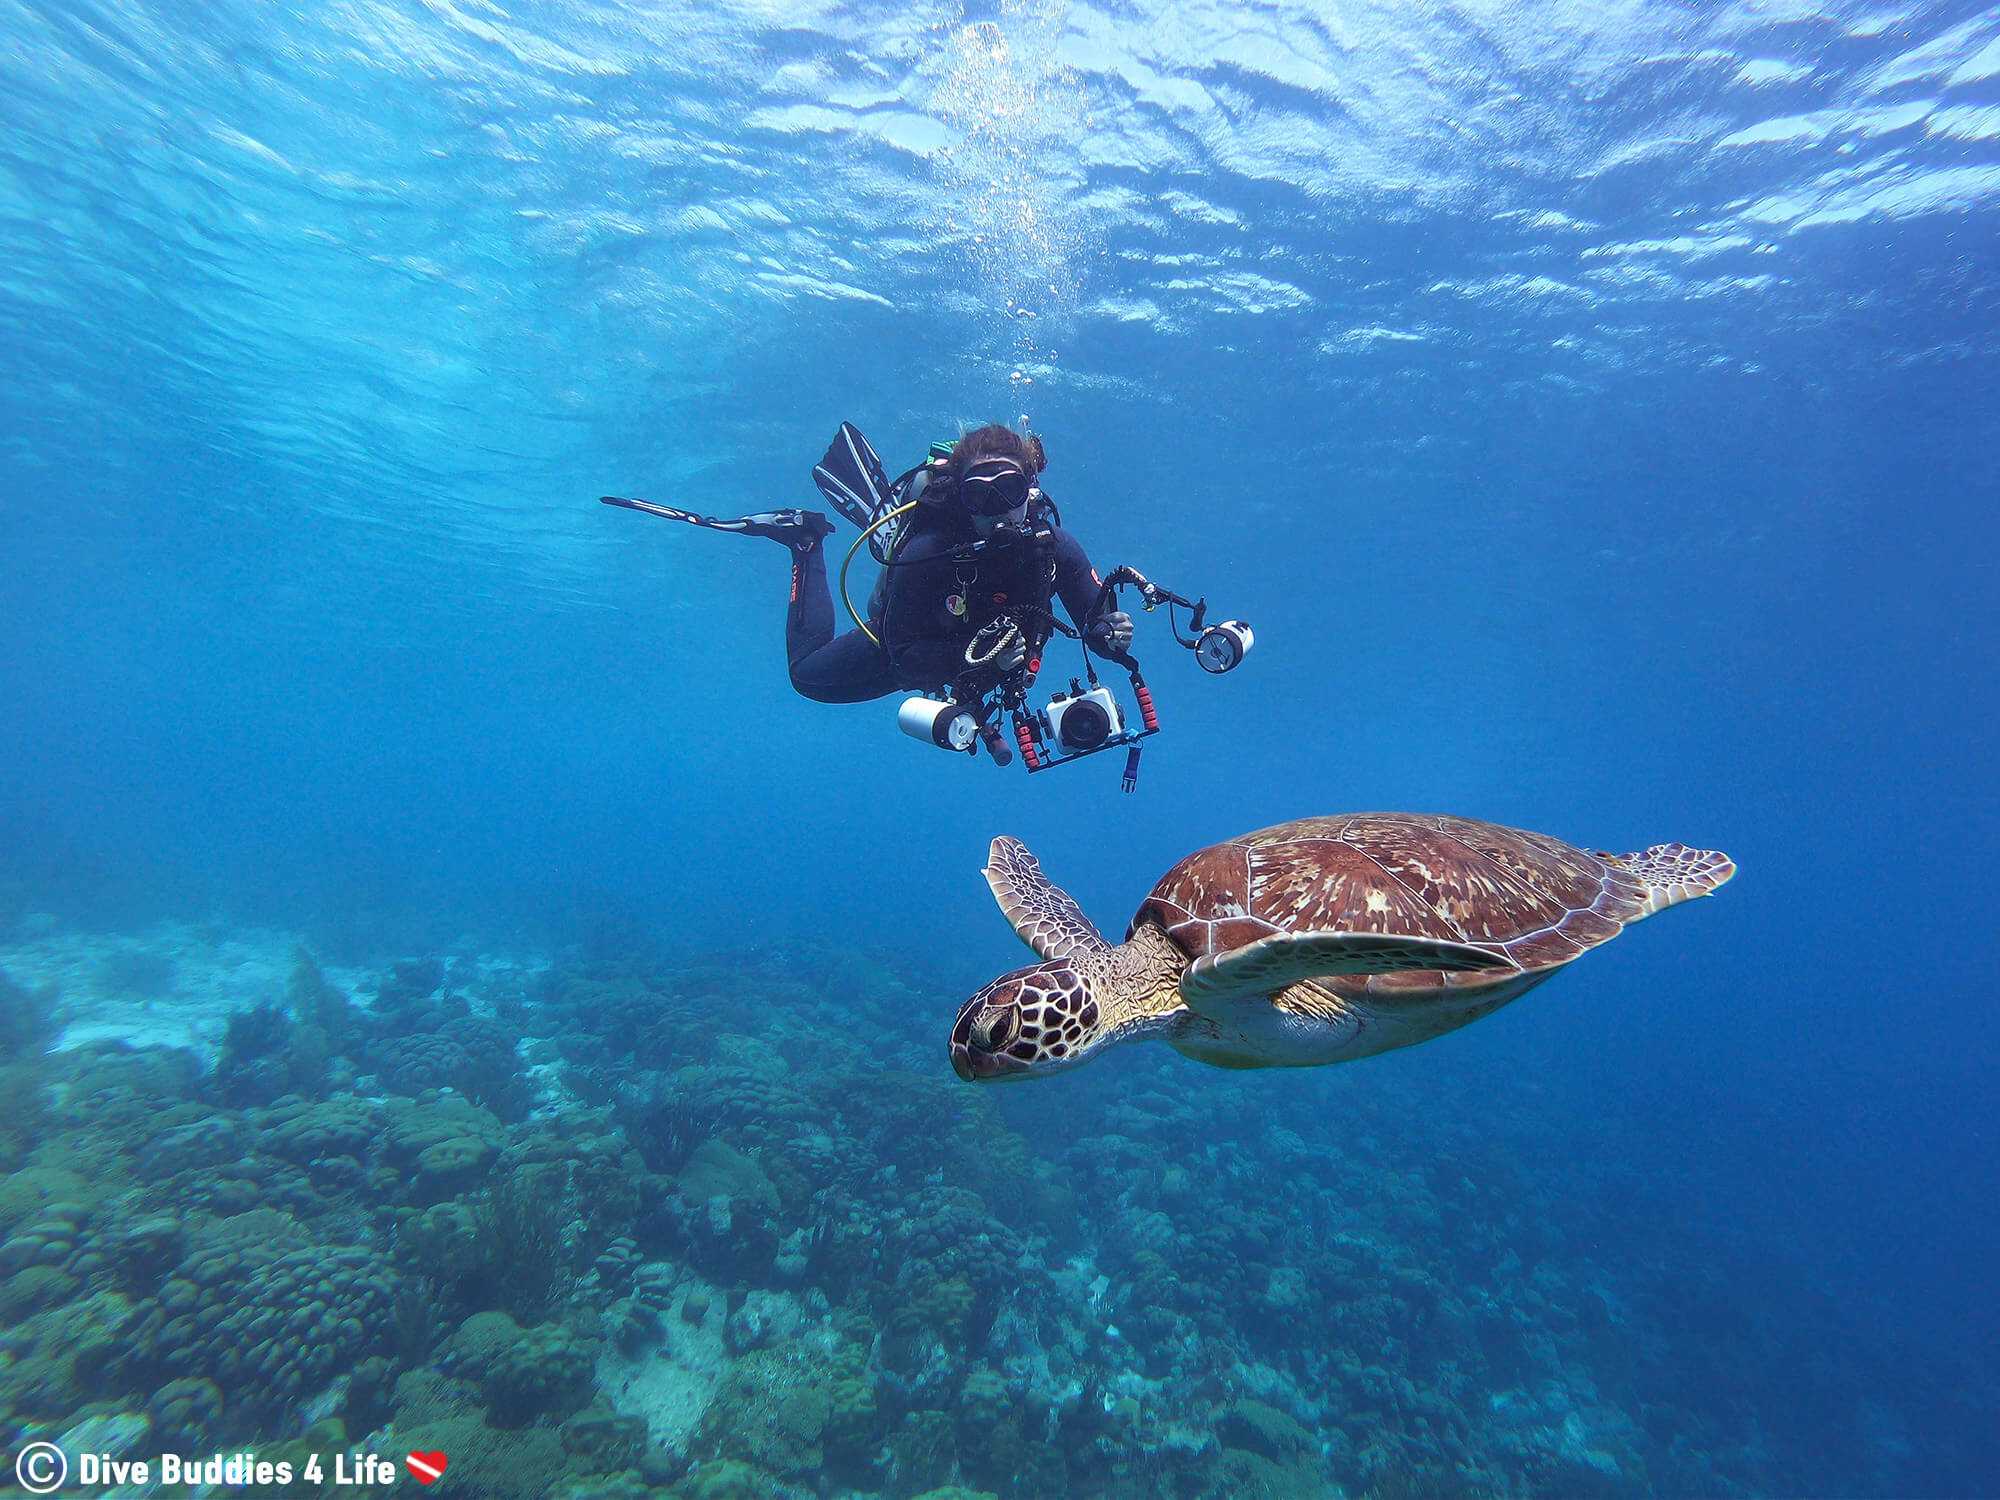 Ali Scuba Diving With A Green Sea Turtle At The Karpata Dive Site On Bonaire, Netherlands